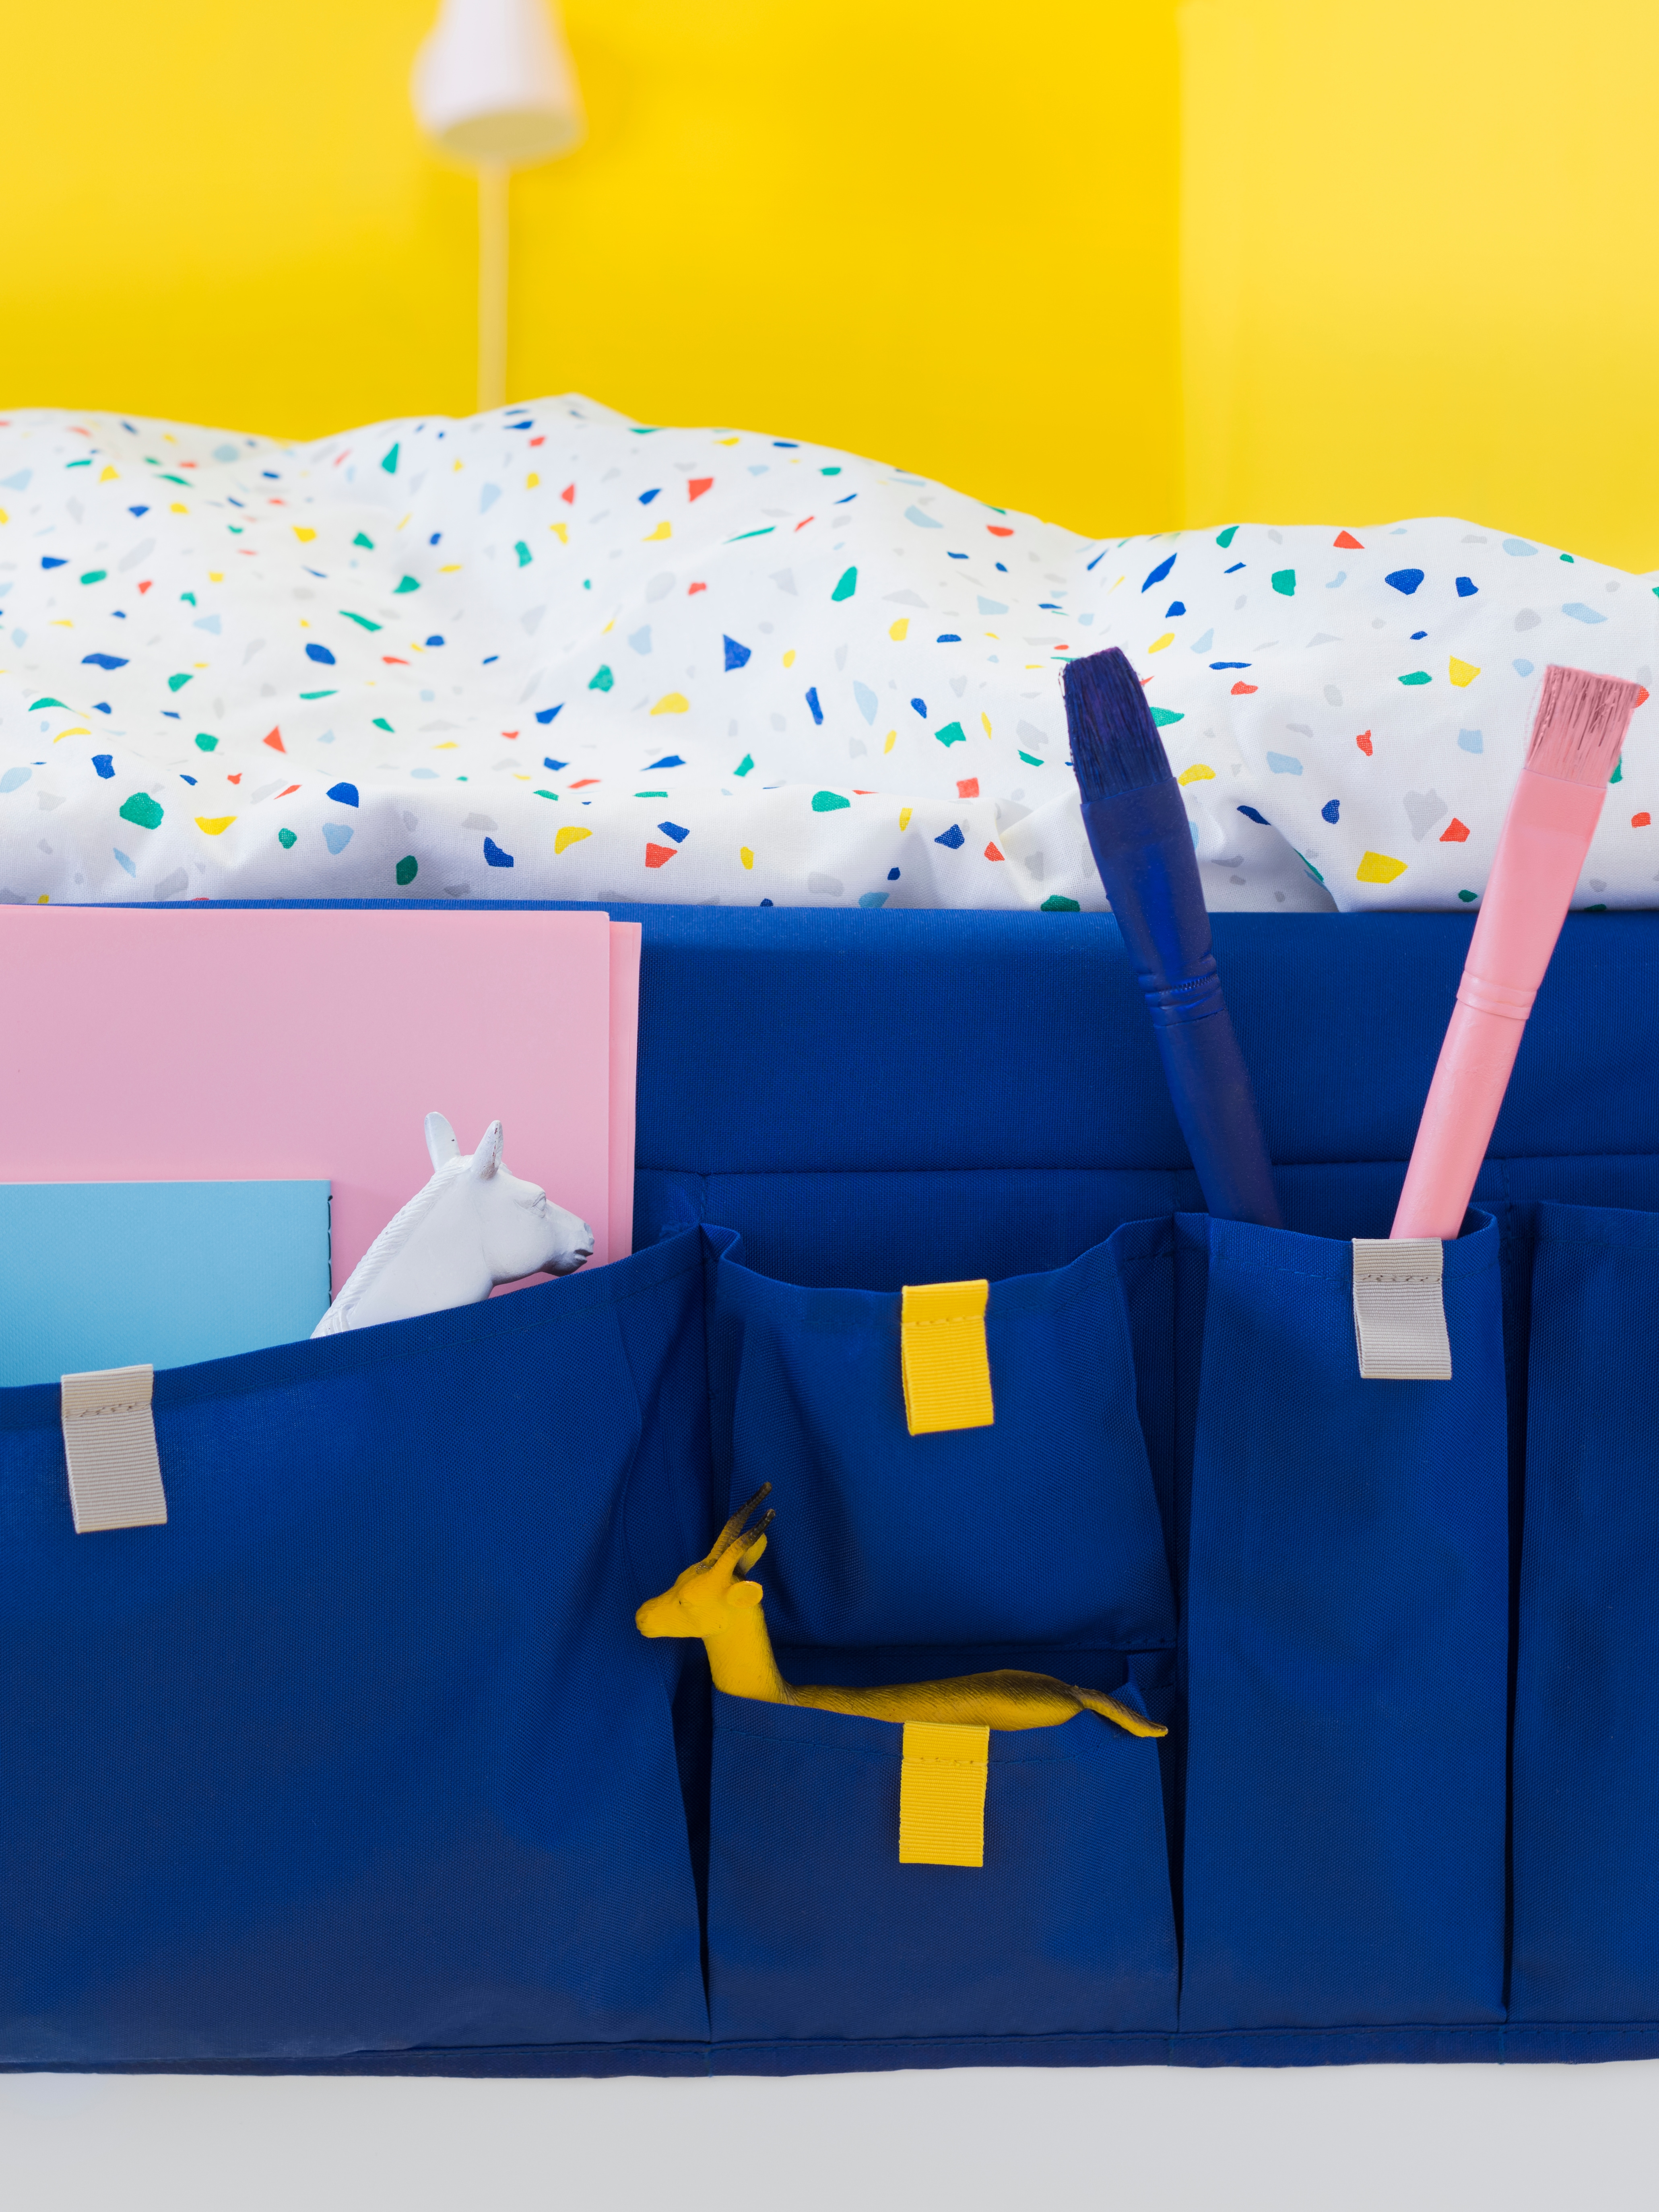 Close-up of a blue, fabric MÖJLIGHET bed pocket, with different-sized sections holding toy animals, paint brushes and paper.